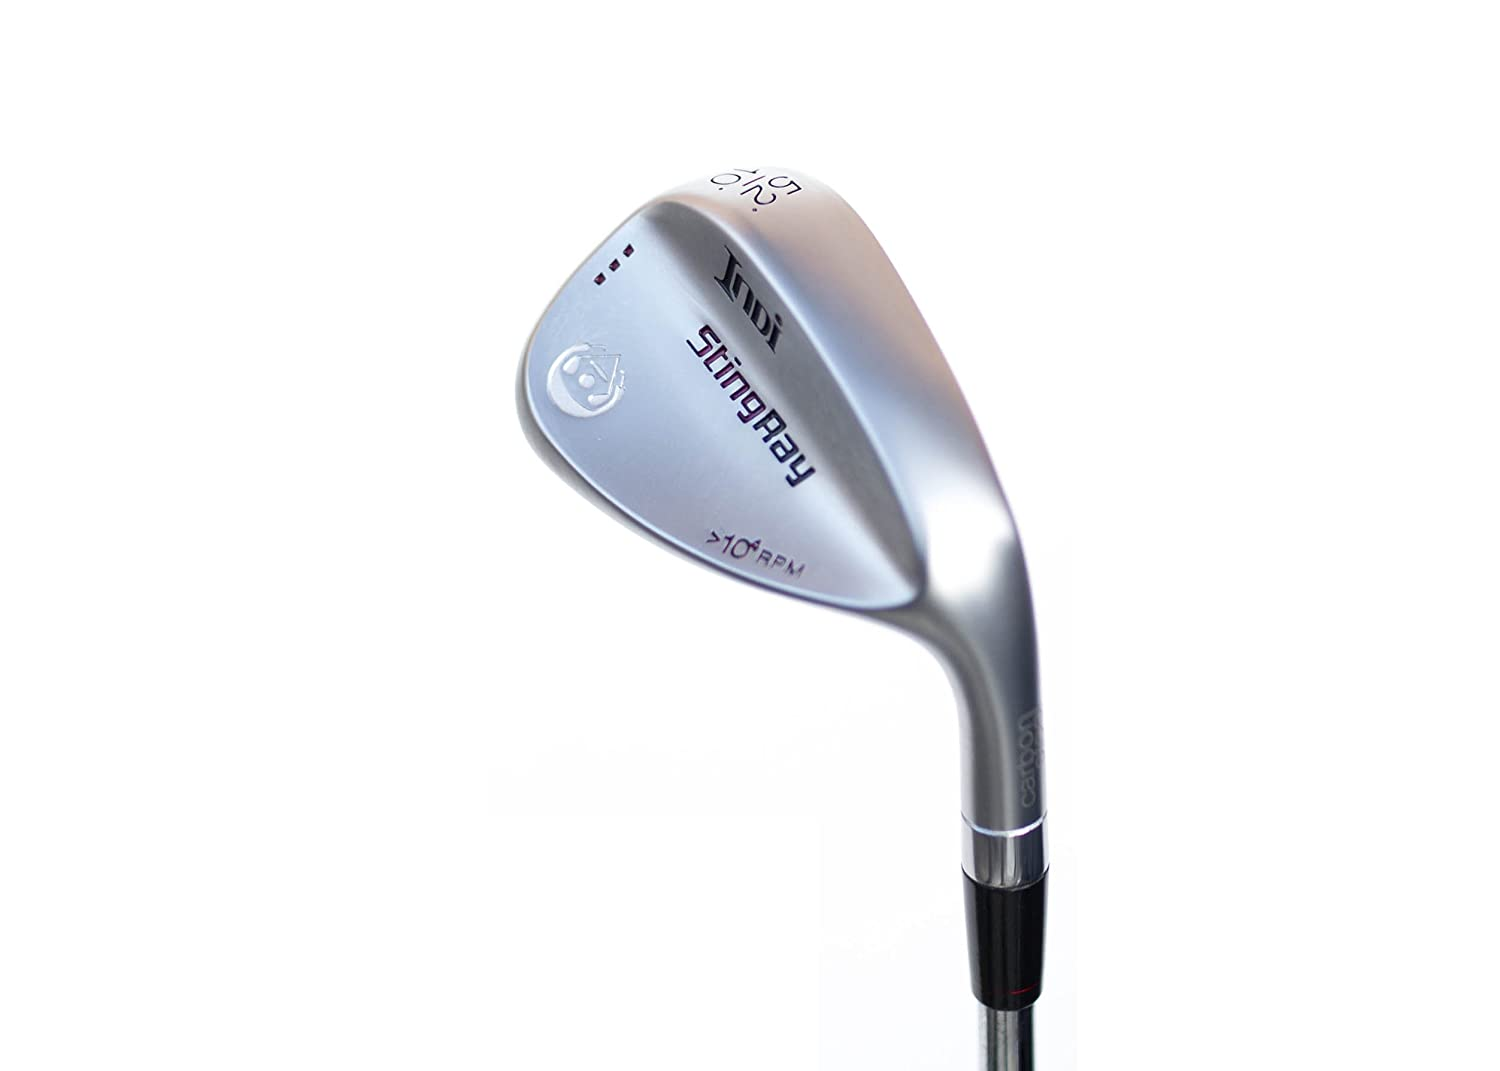 Indi Golf Stingray Wedge - Spin The Ball from Any Lie Like a pro Add 50% More Spin to Your Wedge Game